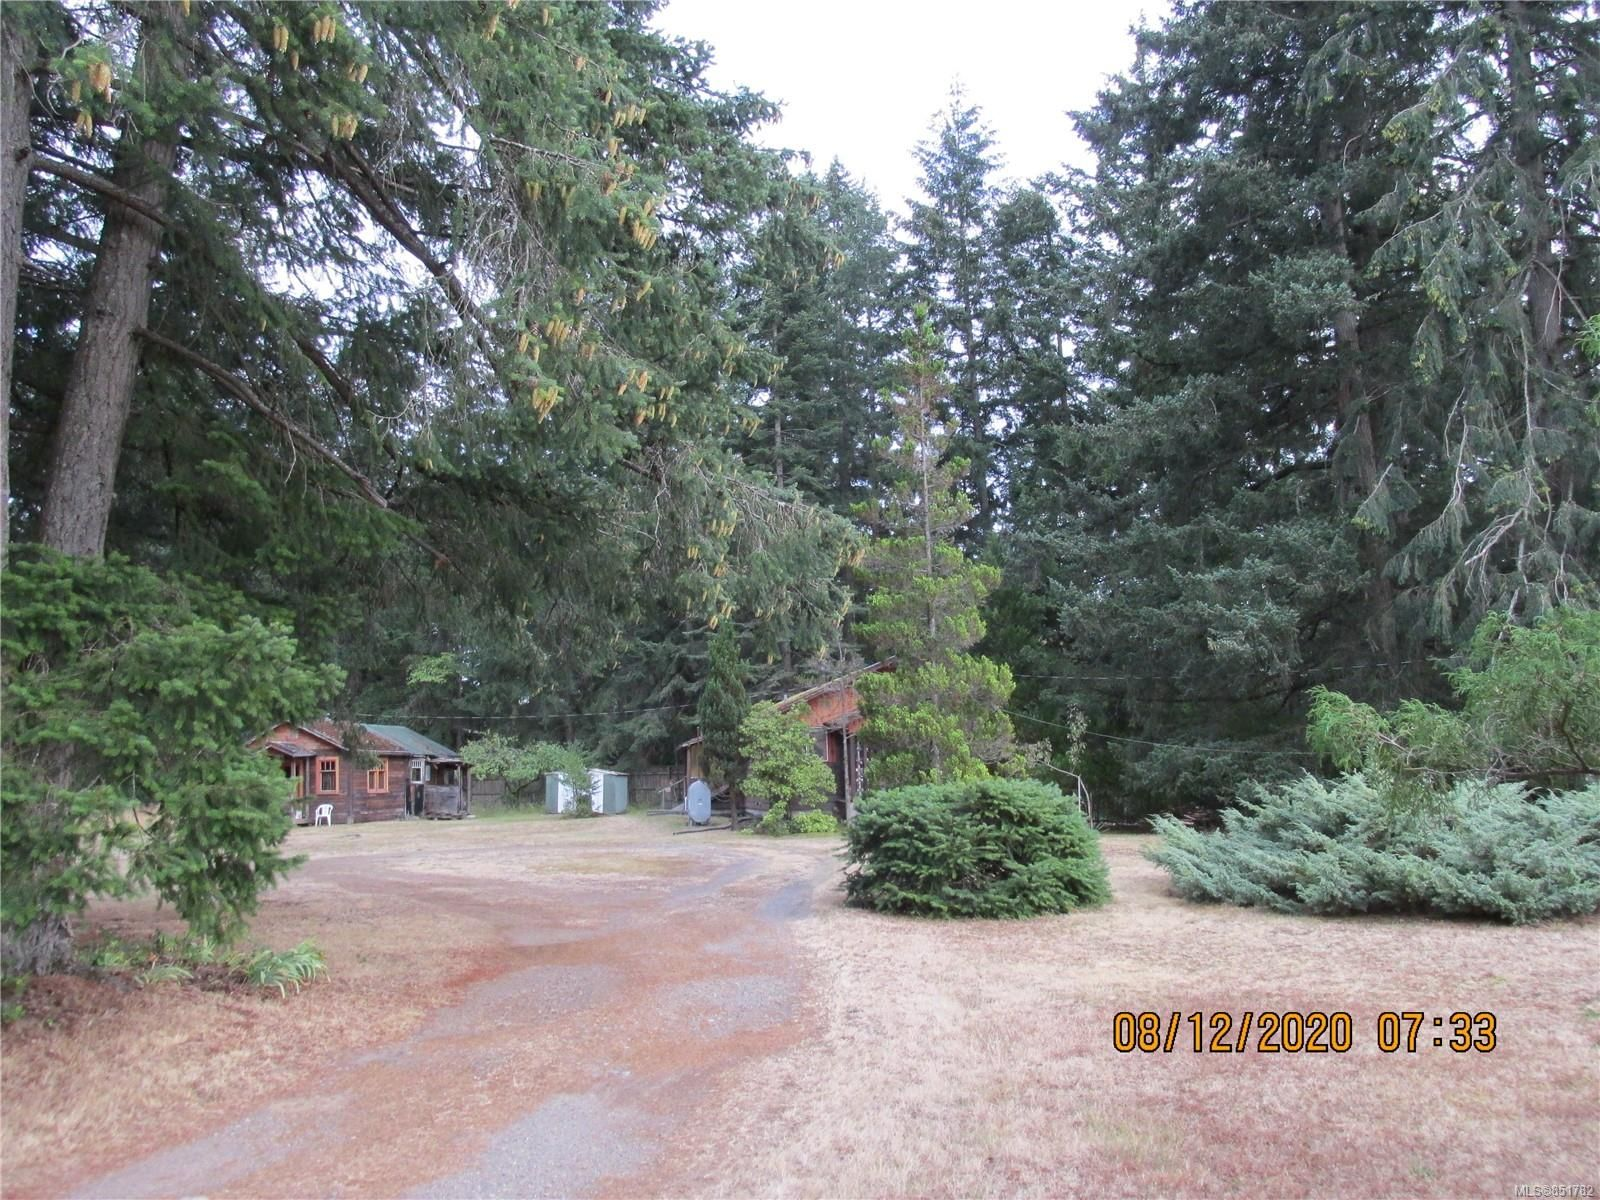 Main Photo: 456 Torrence Rd in : CV Comox Peninsula House for sale (Comox Valley)  : MLS®# 851782